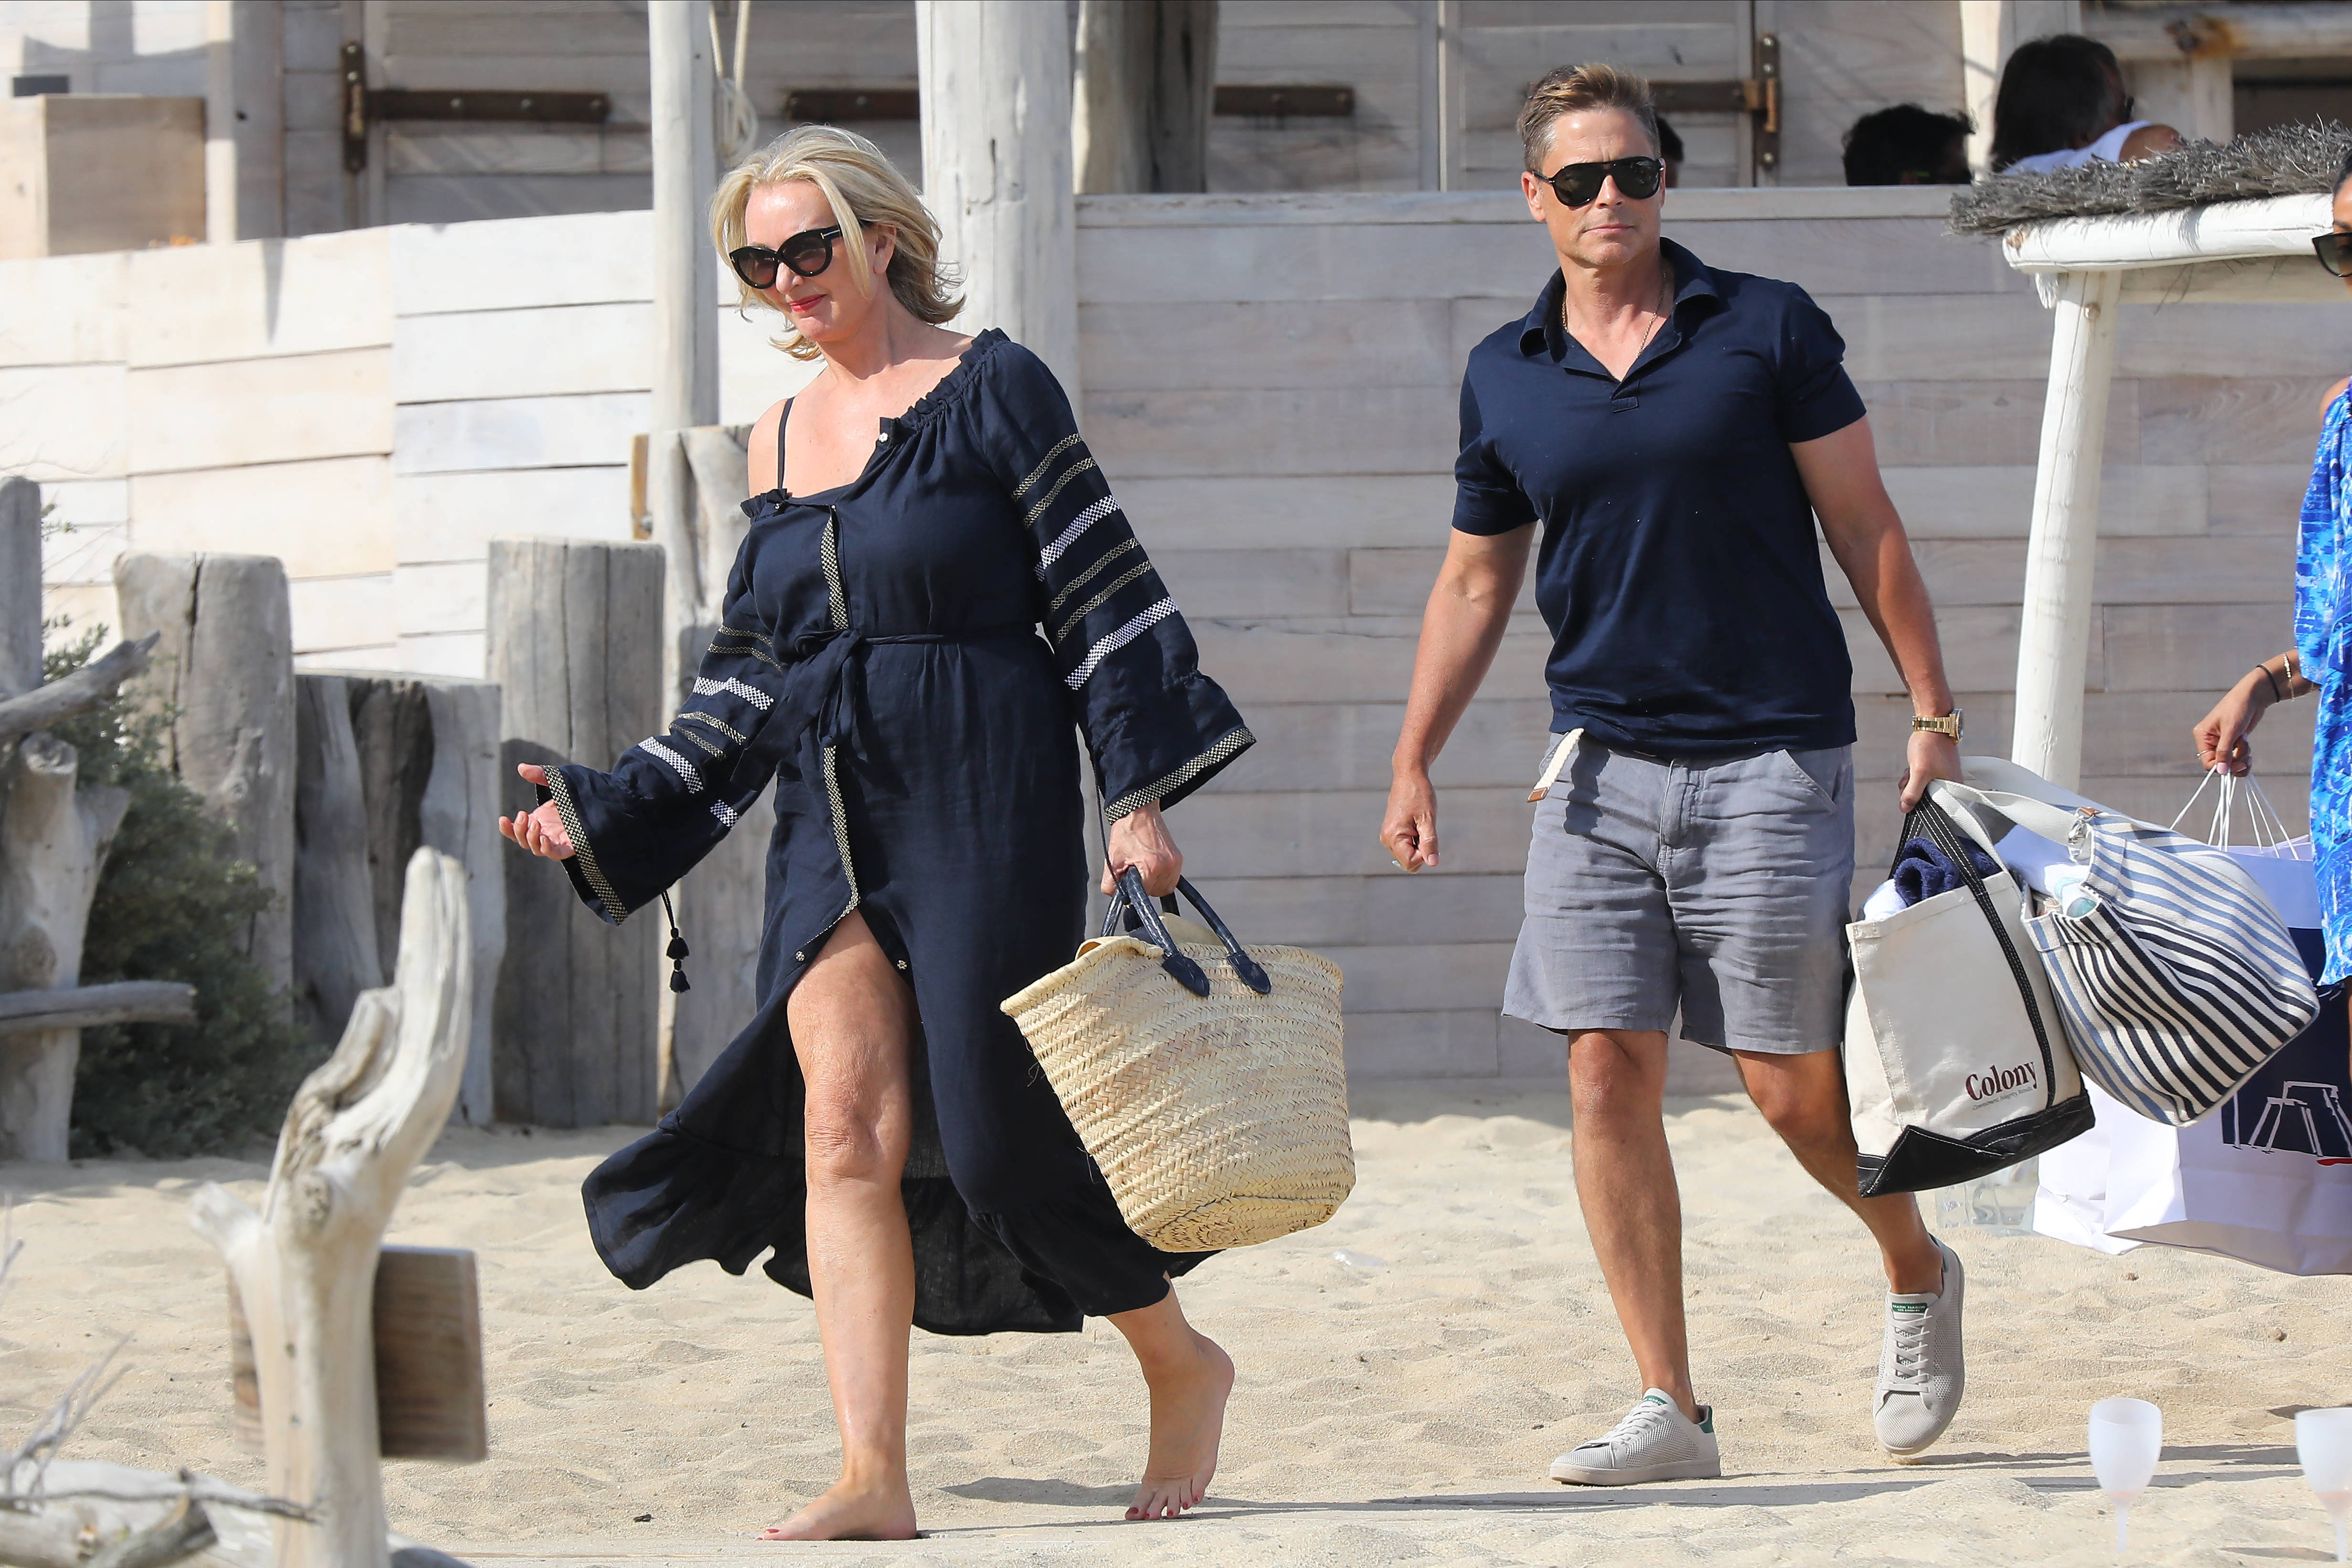 Rob Lowe and wife Sheryl Berkoff were seen at Le Club 55 in St. Tropez, France on June 19, 2019.